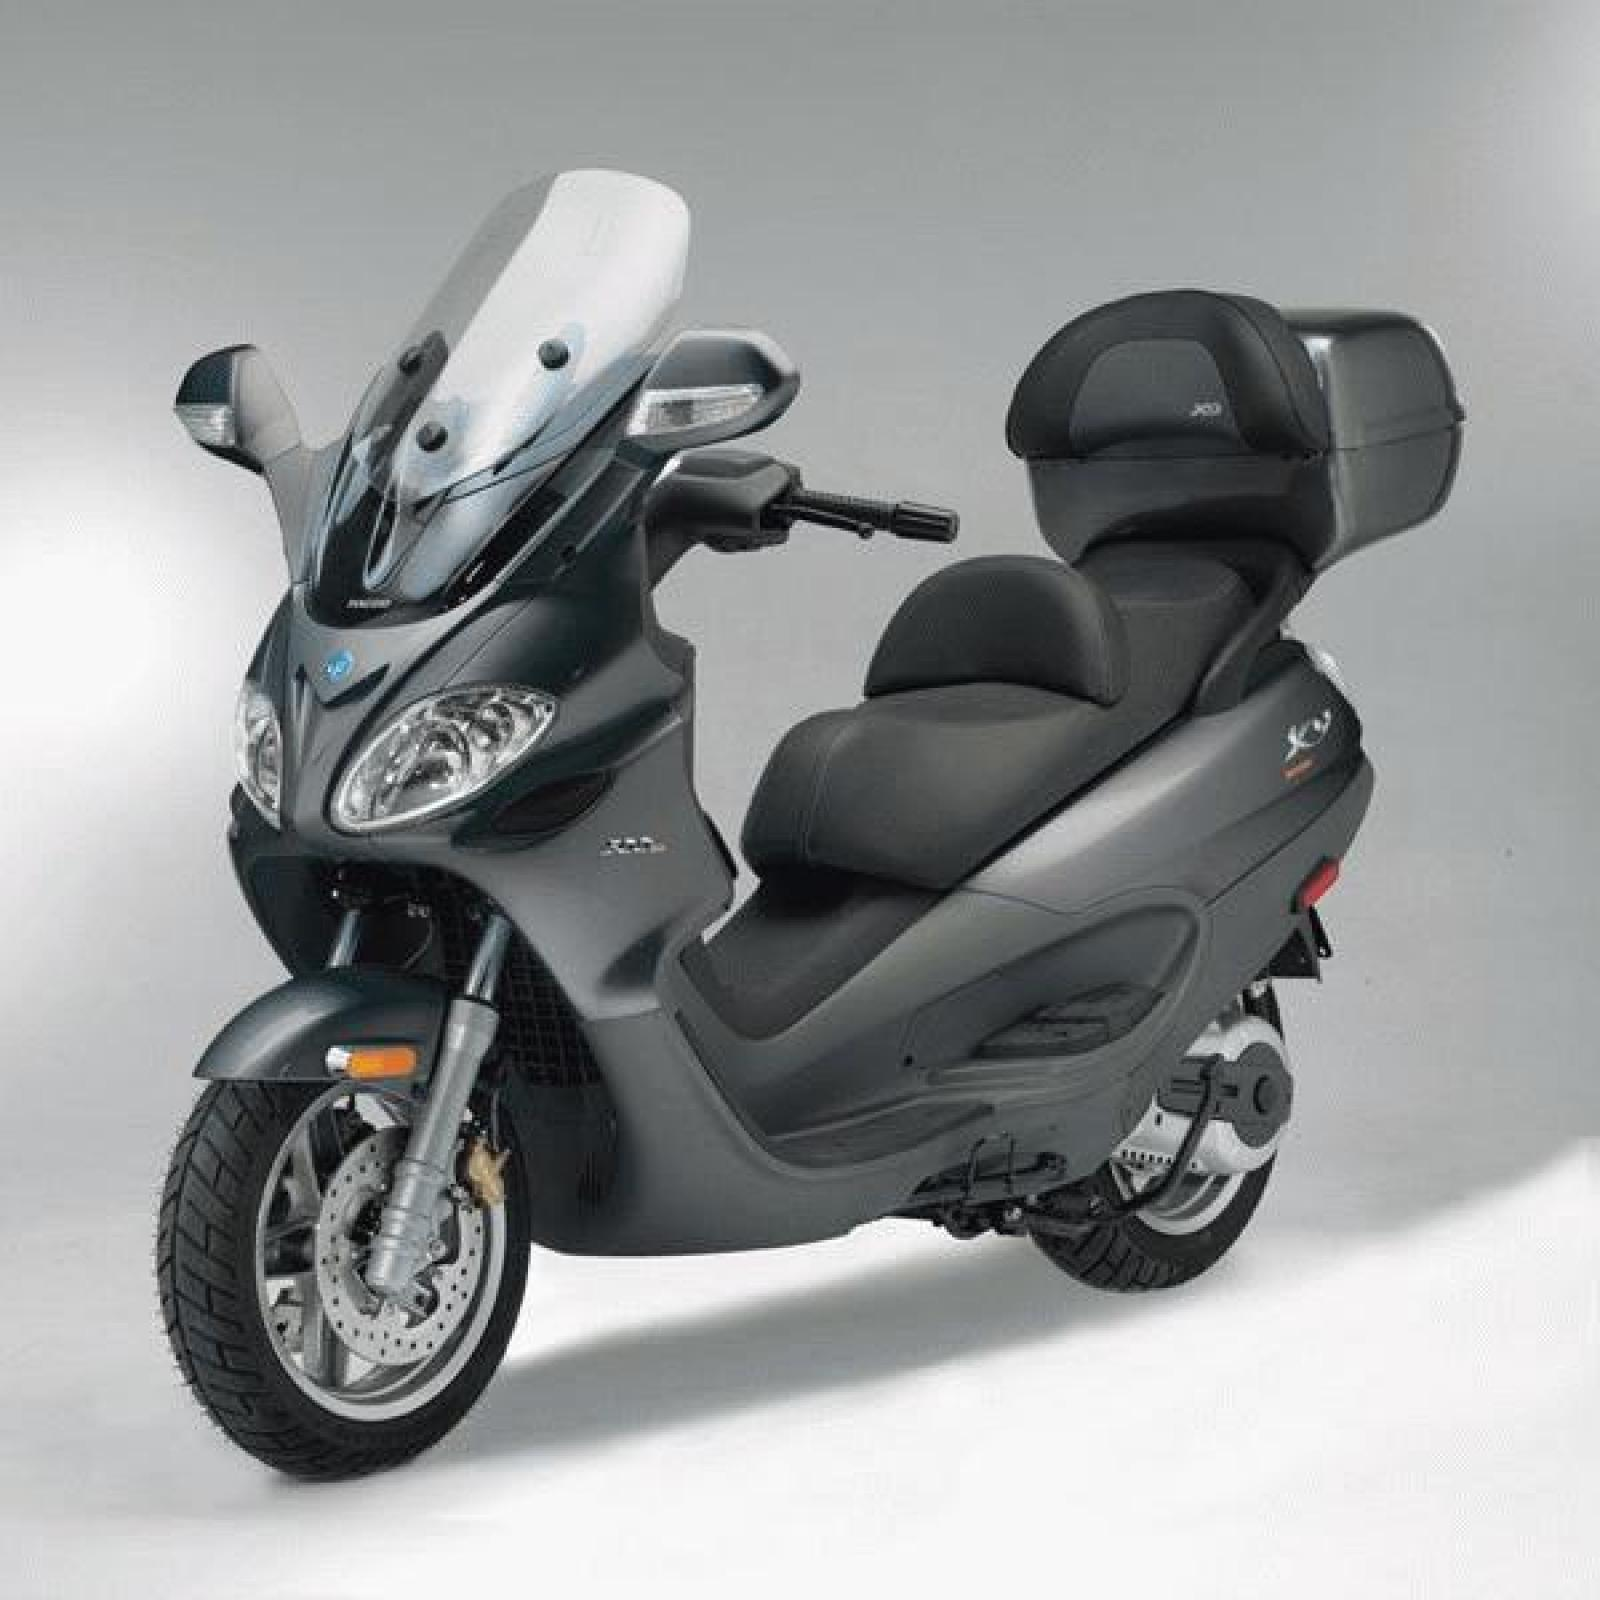 2005 piaggio x9 evolution 250 moto zombdrive com. Black Bedroom Furniture Sets. Home Design Ideas